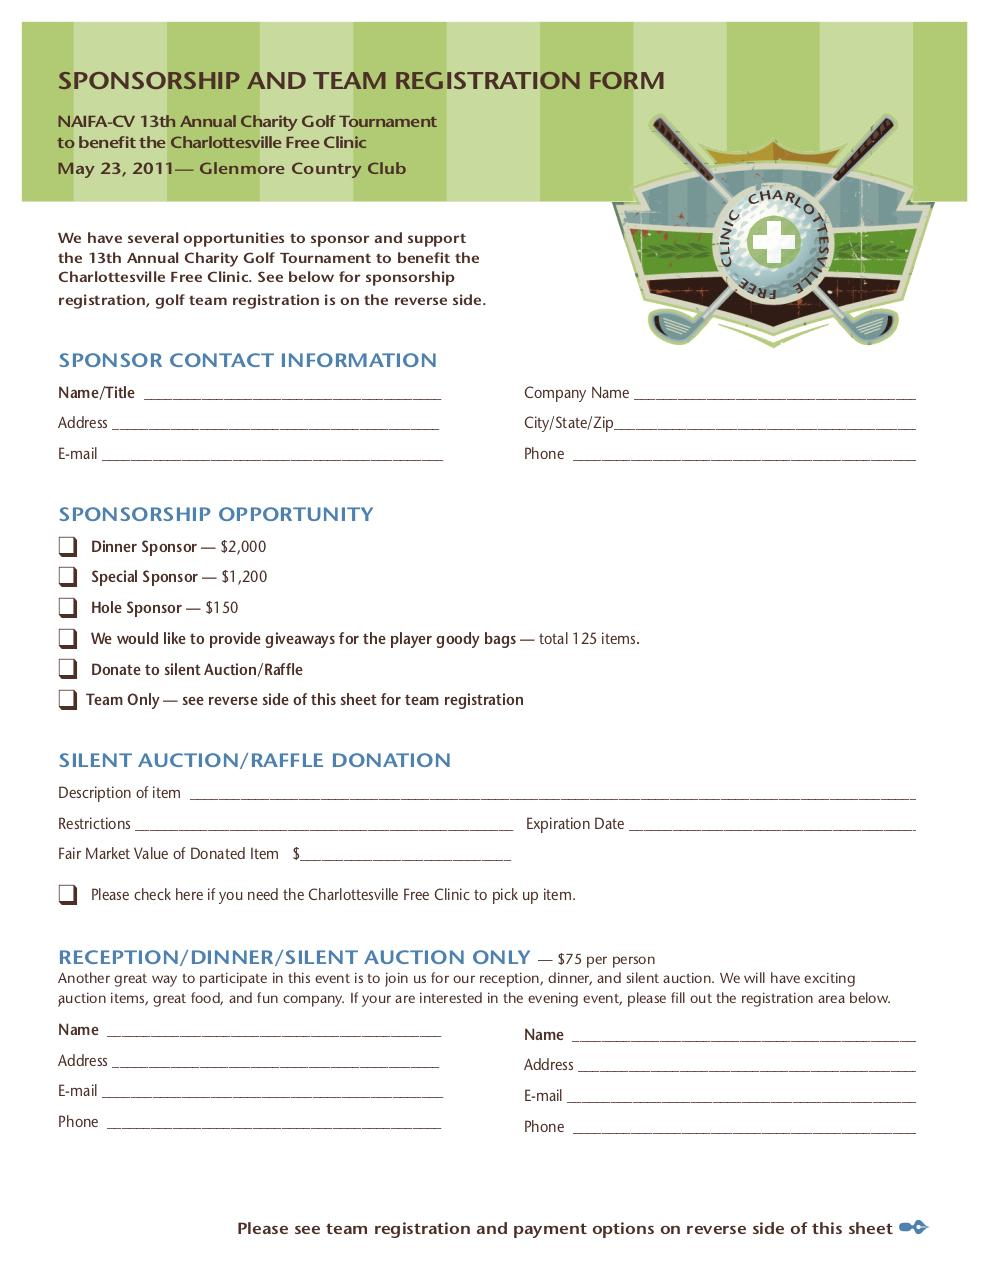 Charity Golf Reg. Form 1 (Charity Golf Reg. Form.Pdf) - Pdf Archive